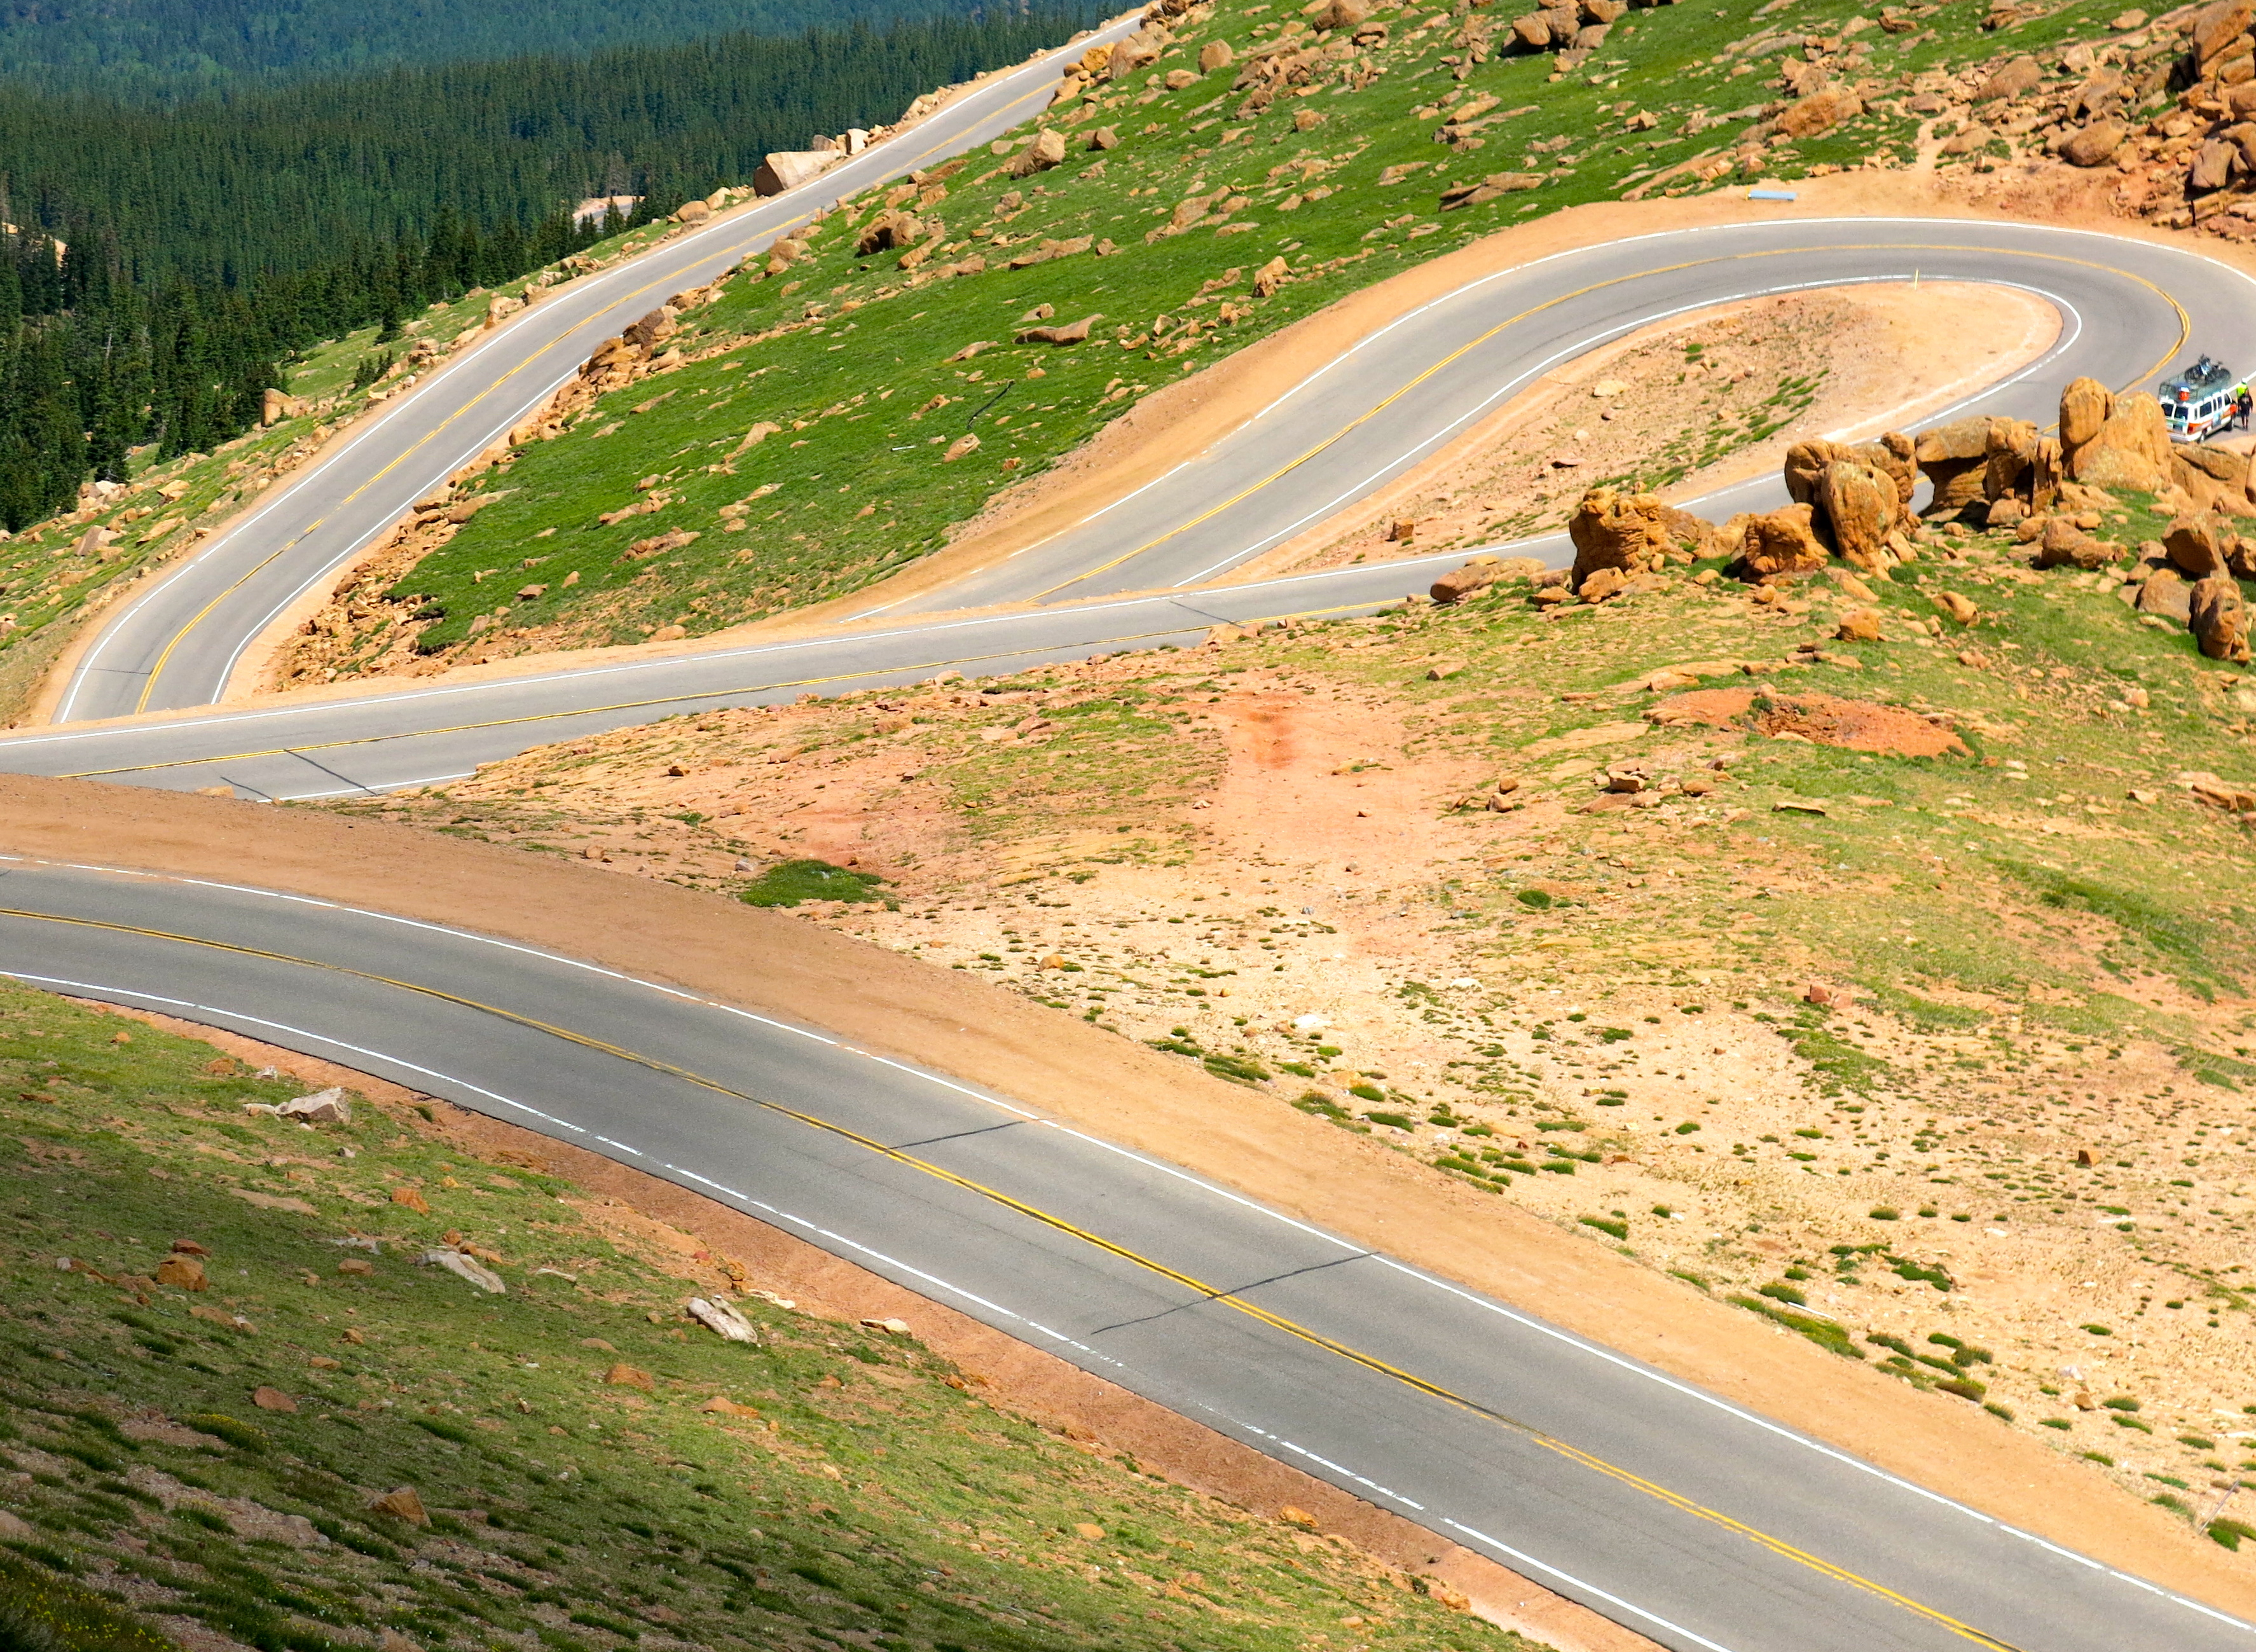 Pike's Peak's Switchbacks